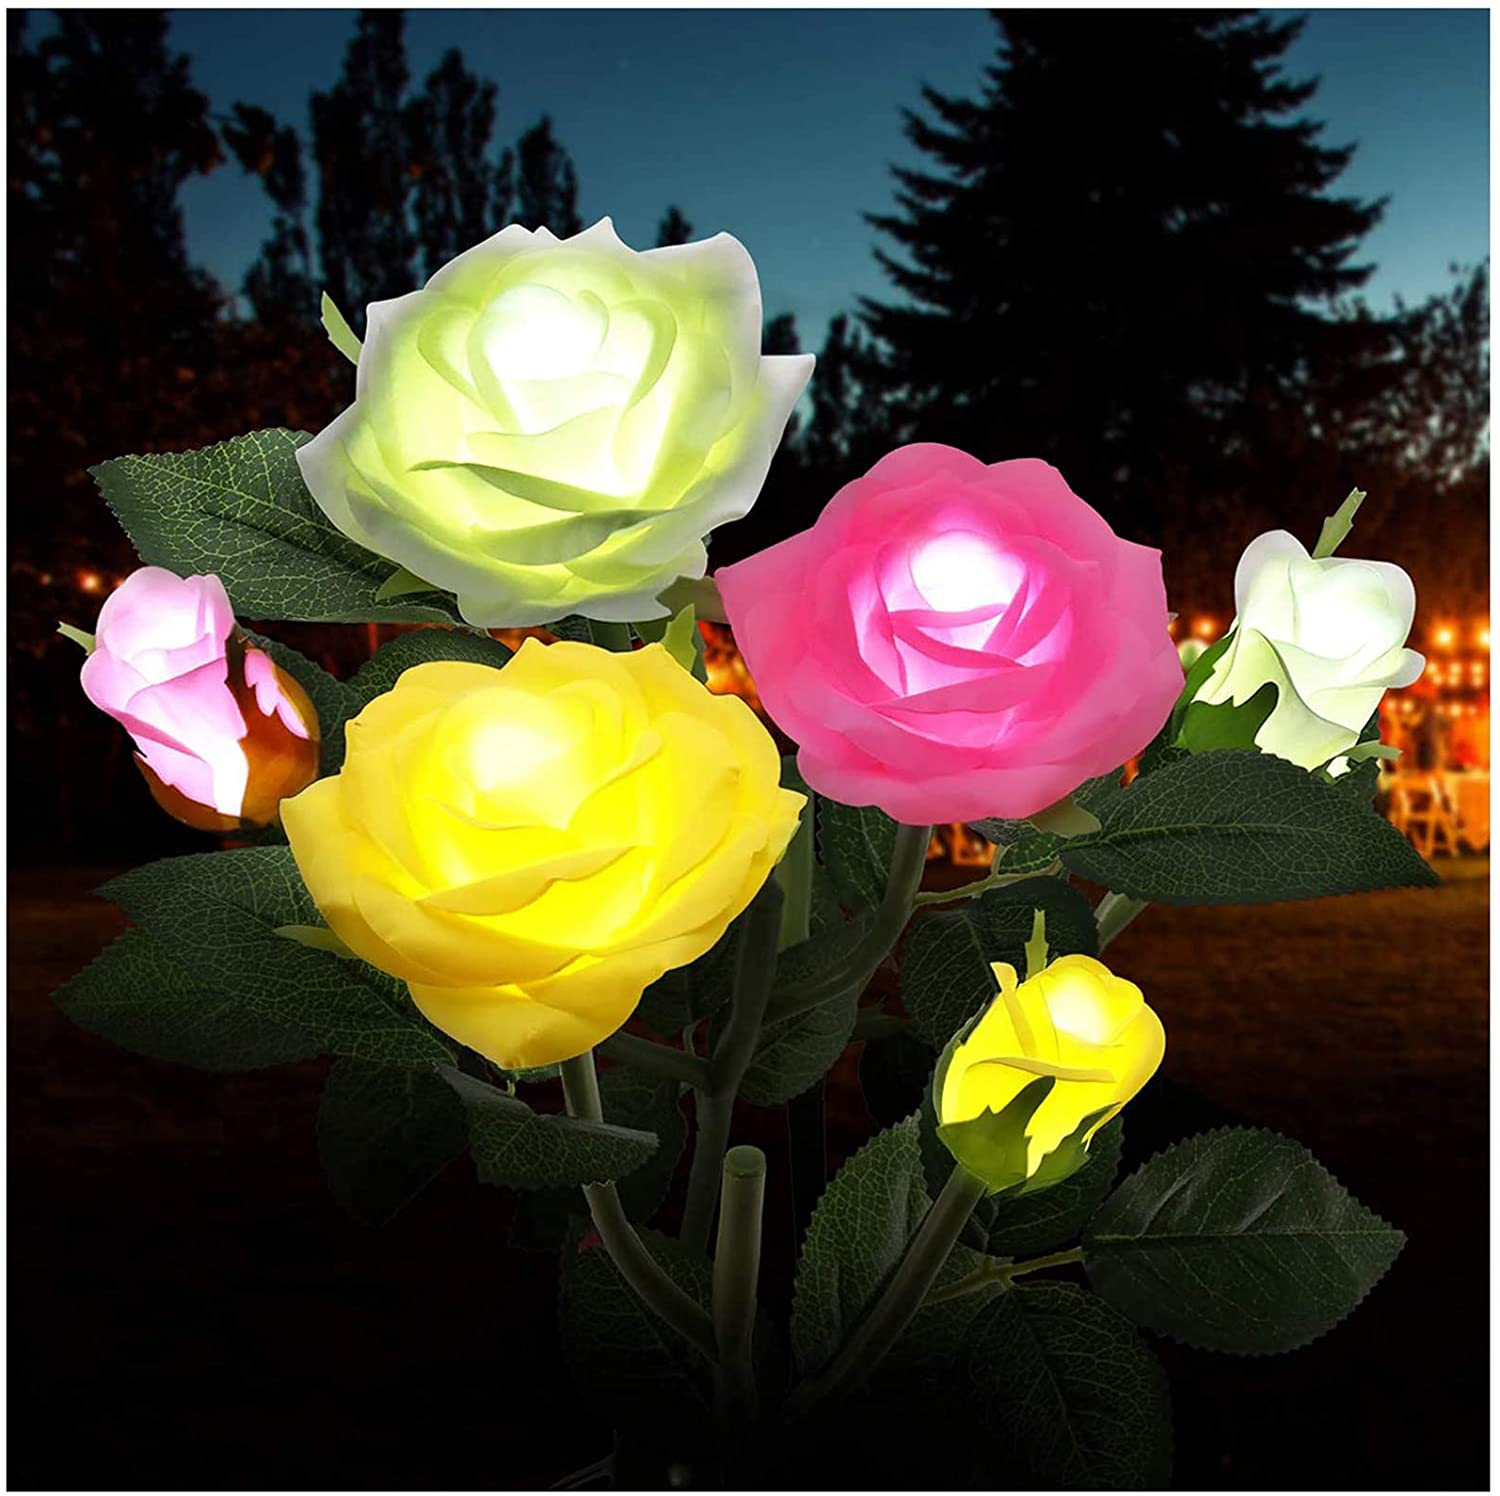 Outdoor Solar Garden Stake Lights,Upgraded LED Solar Powered Light with 6 Rose Flowers, 3 Pack Colorful Waterproof Solar Decorative Lights for Garden, Patio, Backyard (White&Pink&Yellow)